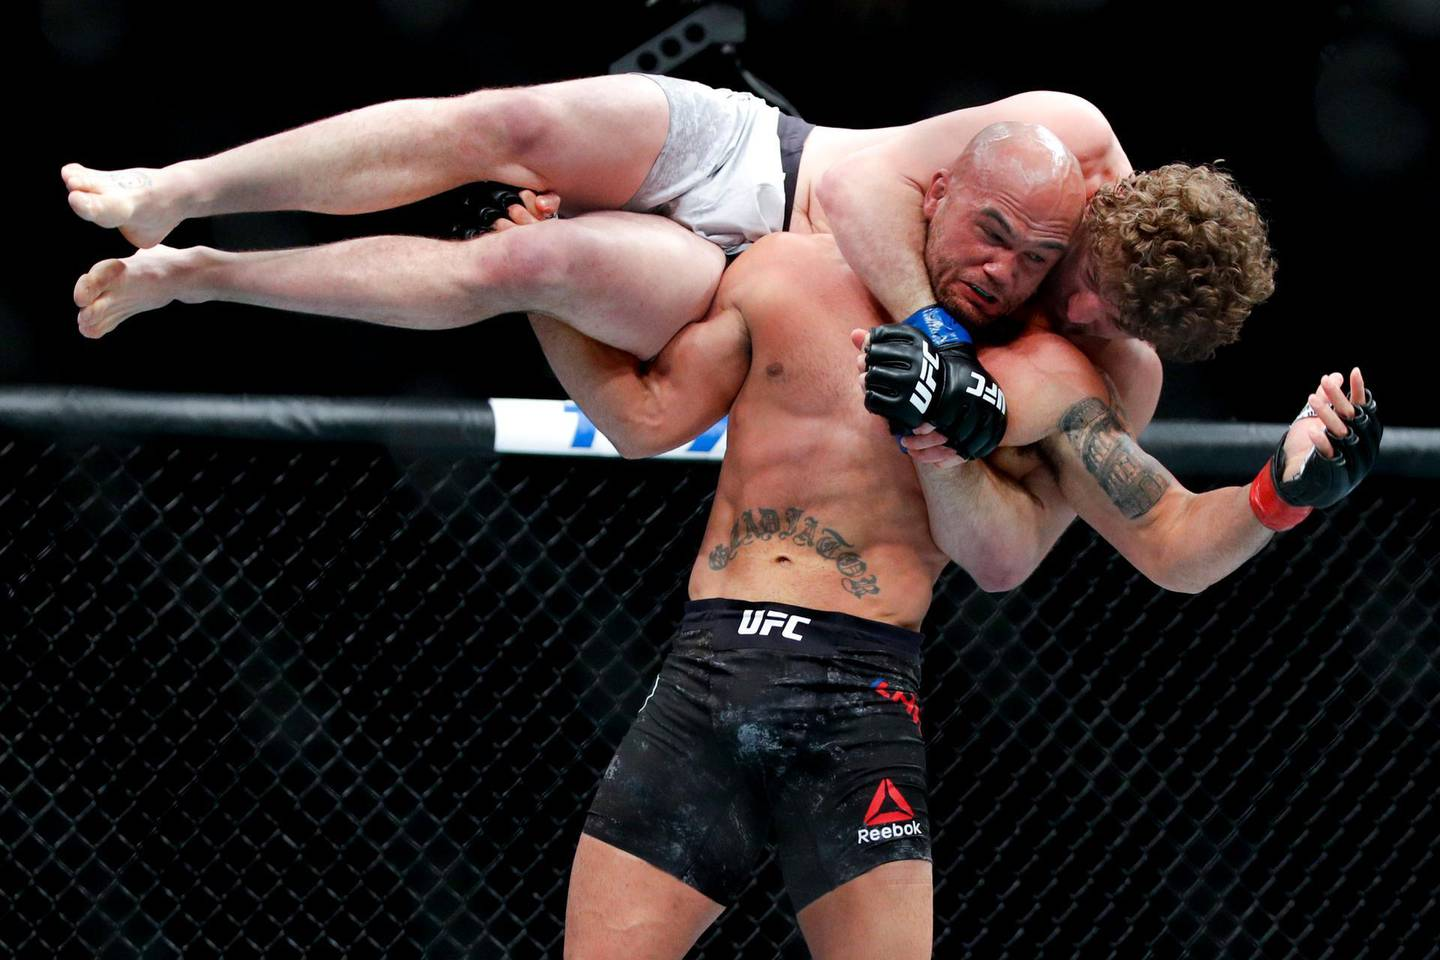 Robbie Lawler picks up Ben Askren in a welterweight mixed martial arts bout at UFC 235, Saturday, March 2, 2019, in Las Vegas. (AP Photo/John Locher)